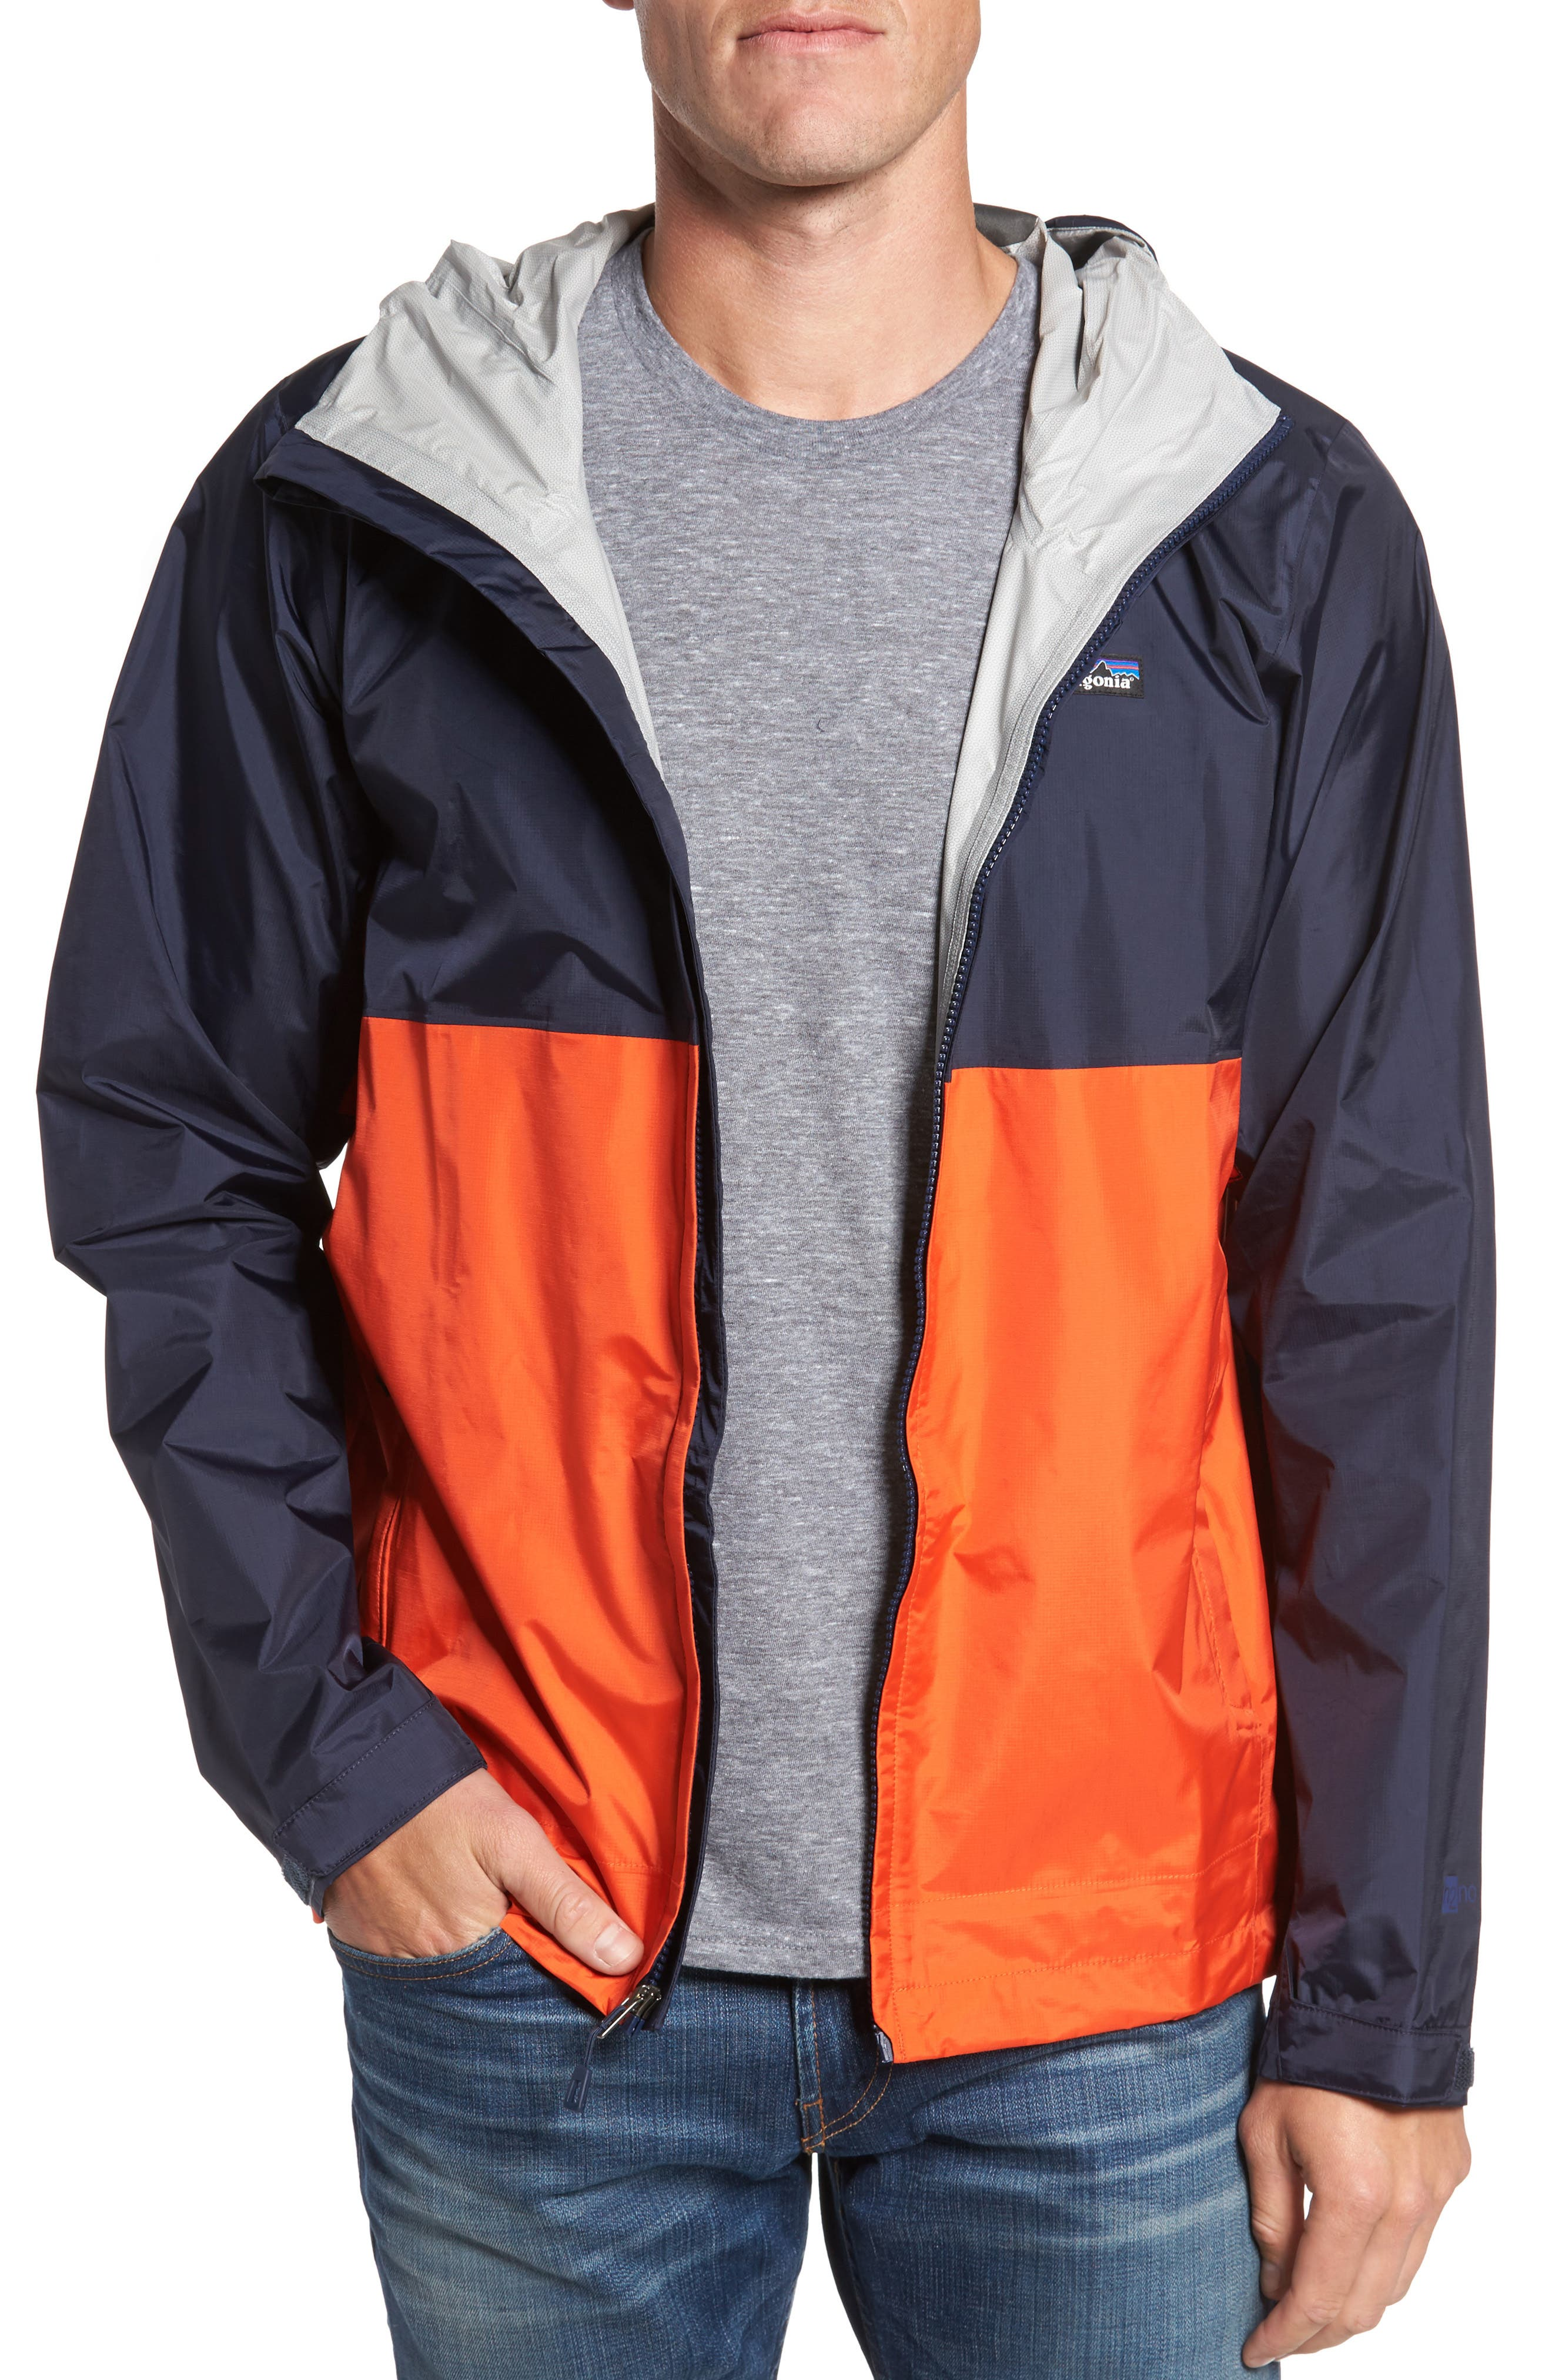 Alternate Image 1 Selected - Patagonia 'Torrentshell' Packable Rain Jacket